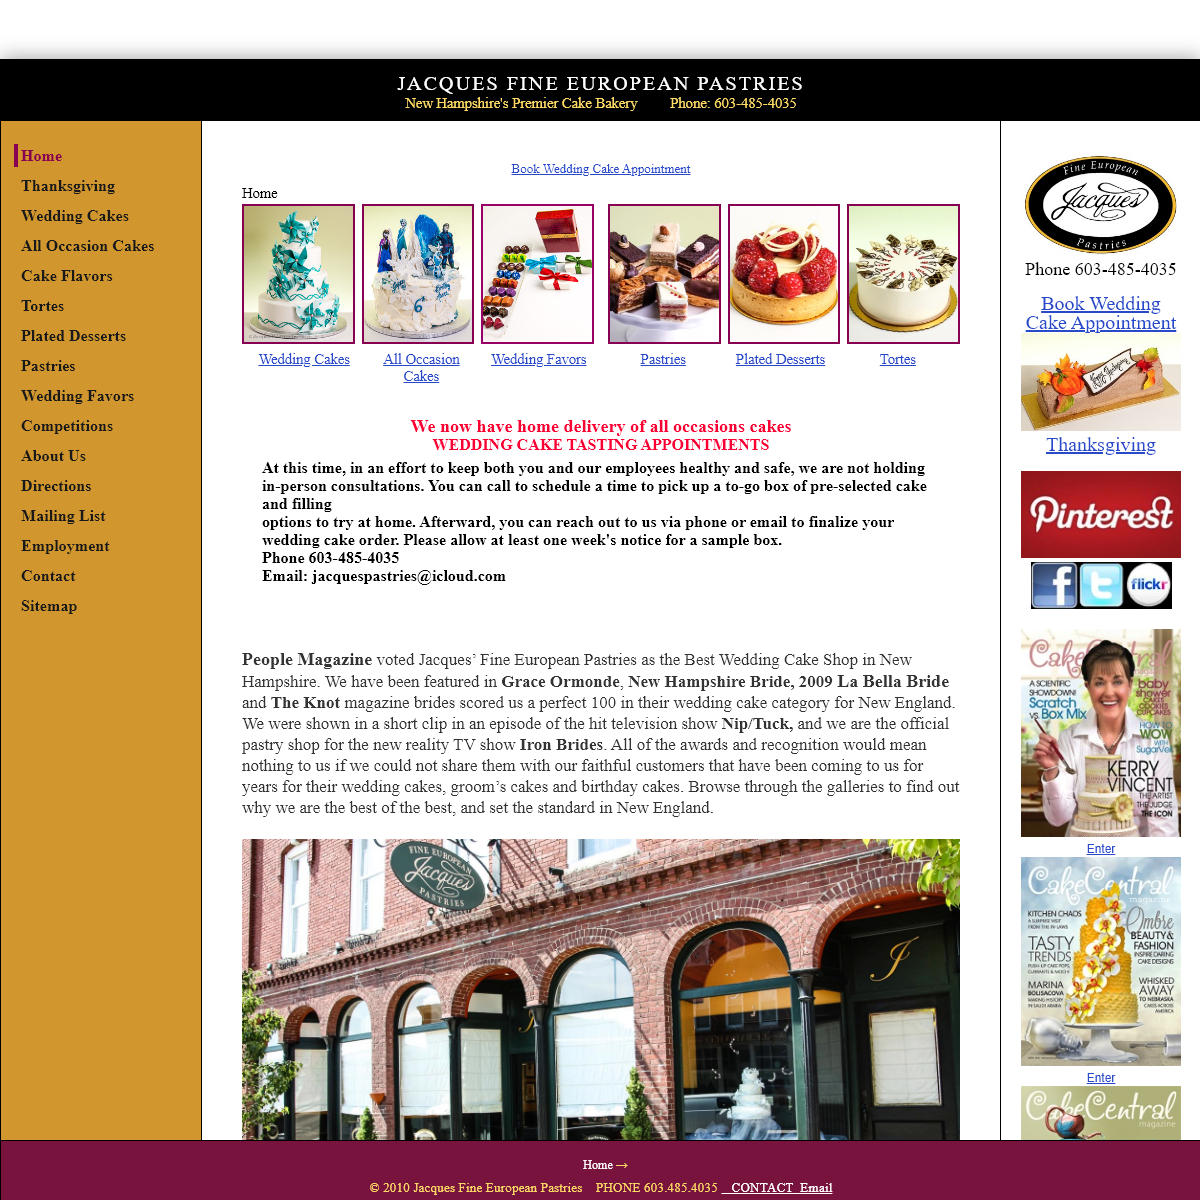 Jacques Fine European Pastries- The Best Tasting Cakes in New Hampshire